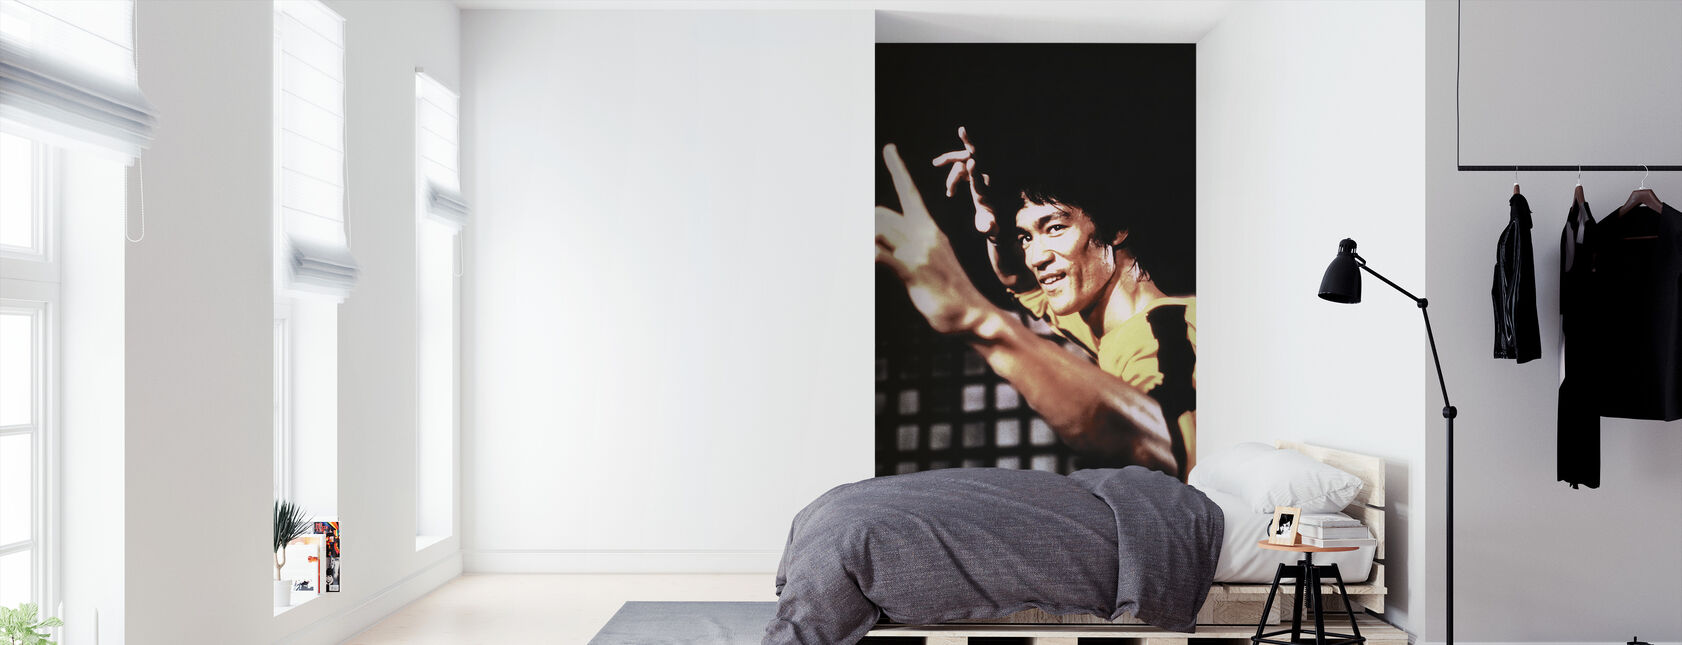 Warriors reis - Bruce Lee - Behang - Slaapkamer